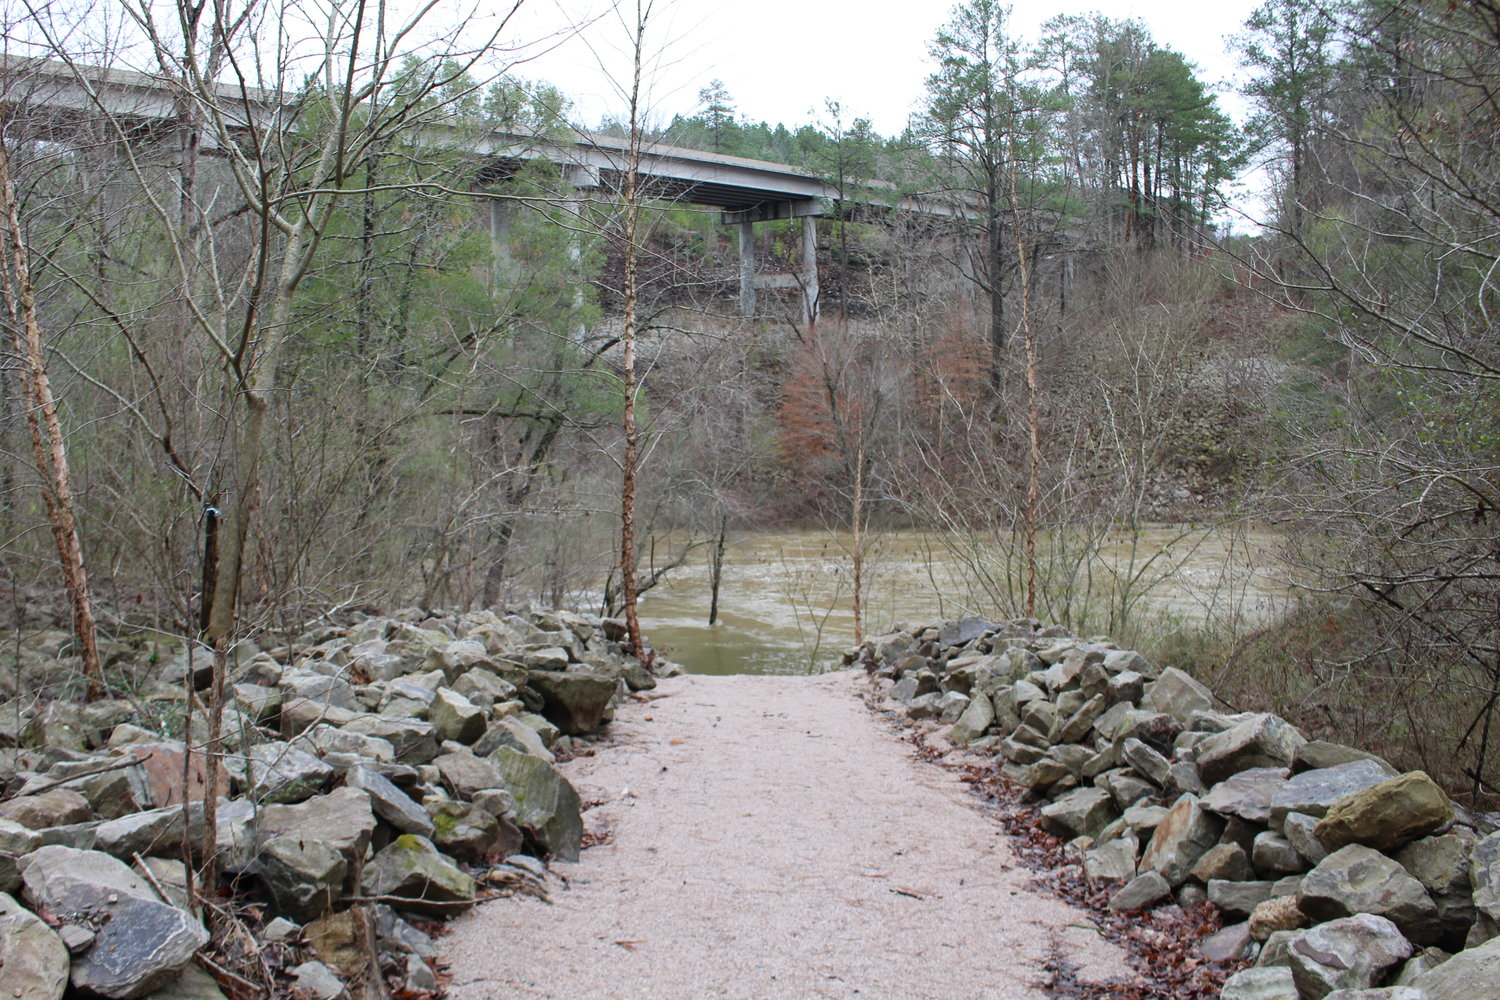 The new paths to Blackwater Creek provide significantly easier access to the waterway.